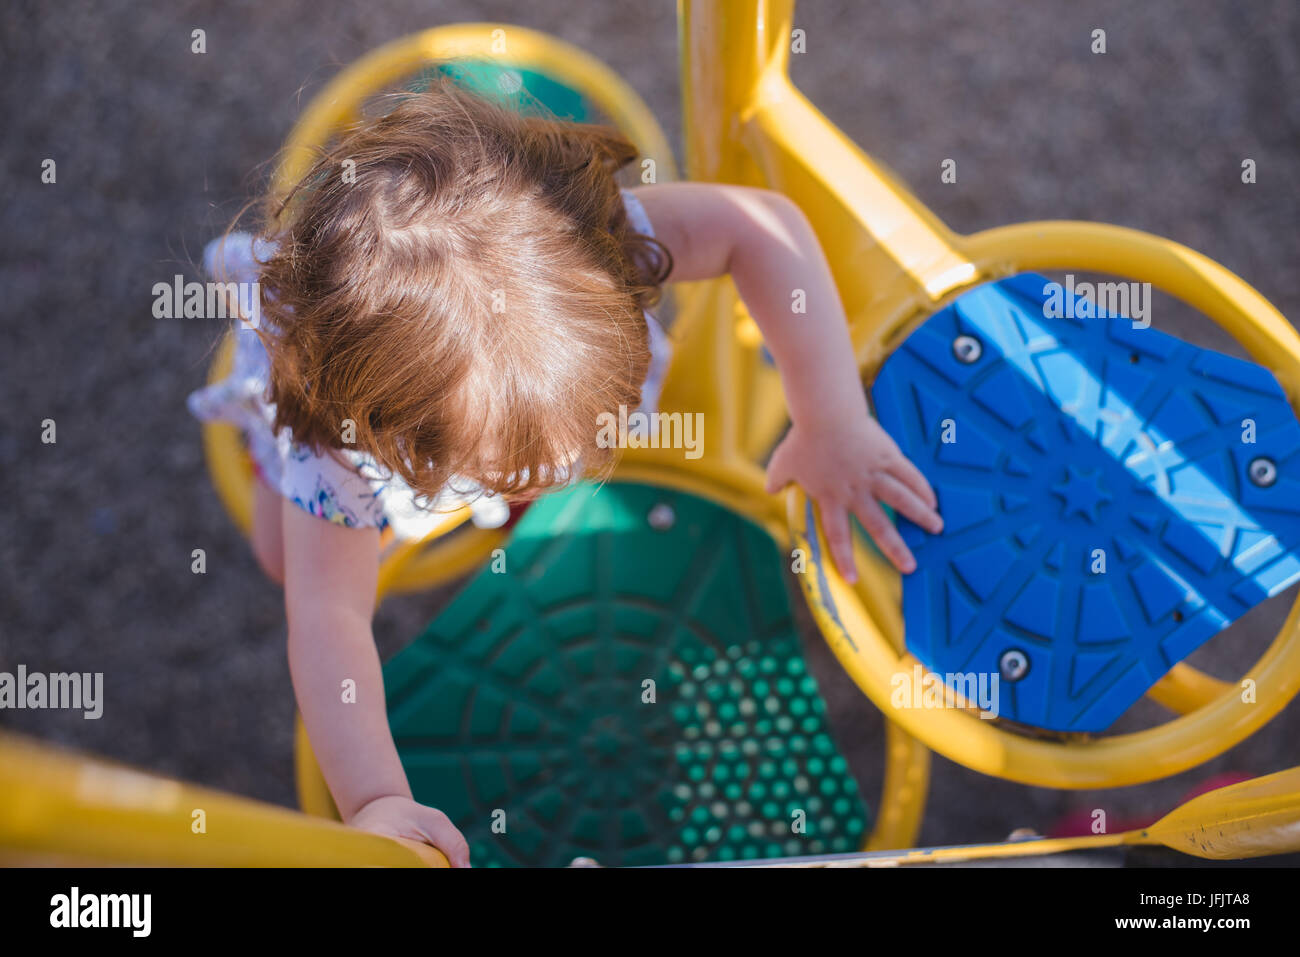 A young girl climbs on playground equipment in the sunlight wearing bright red shoes. - Stock Image